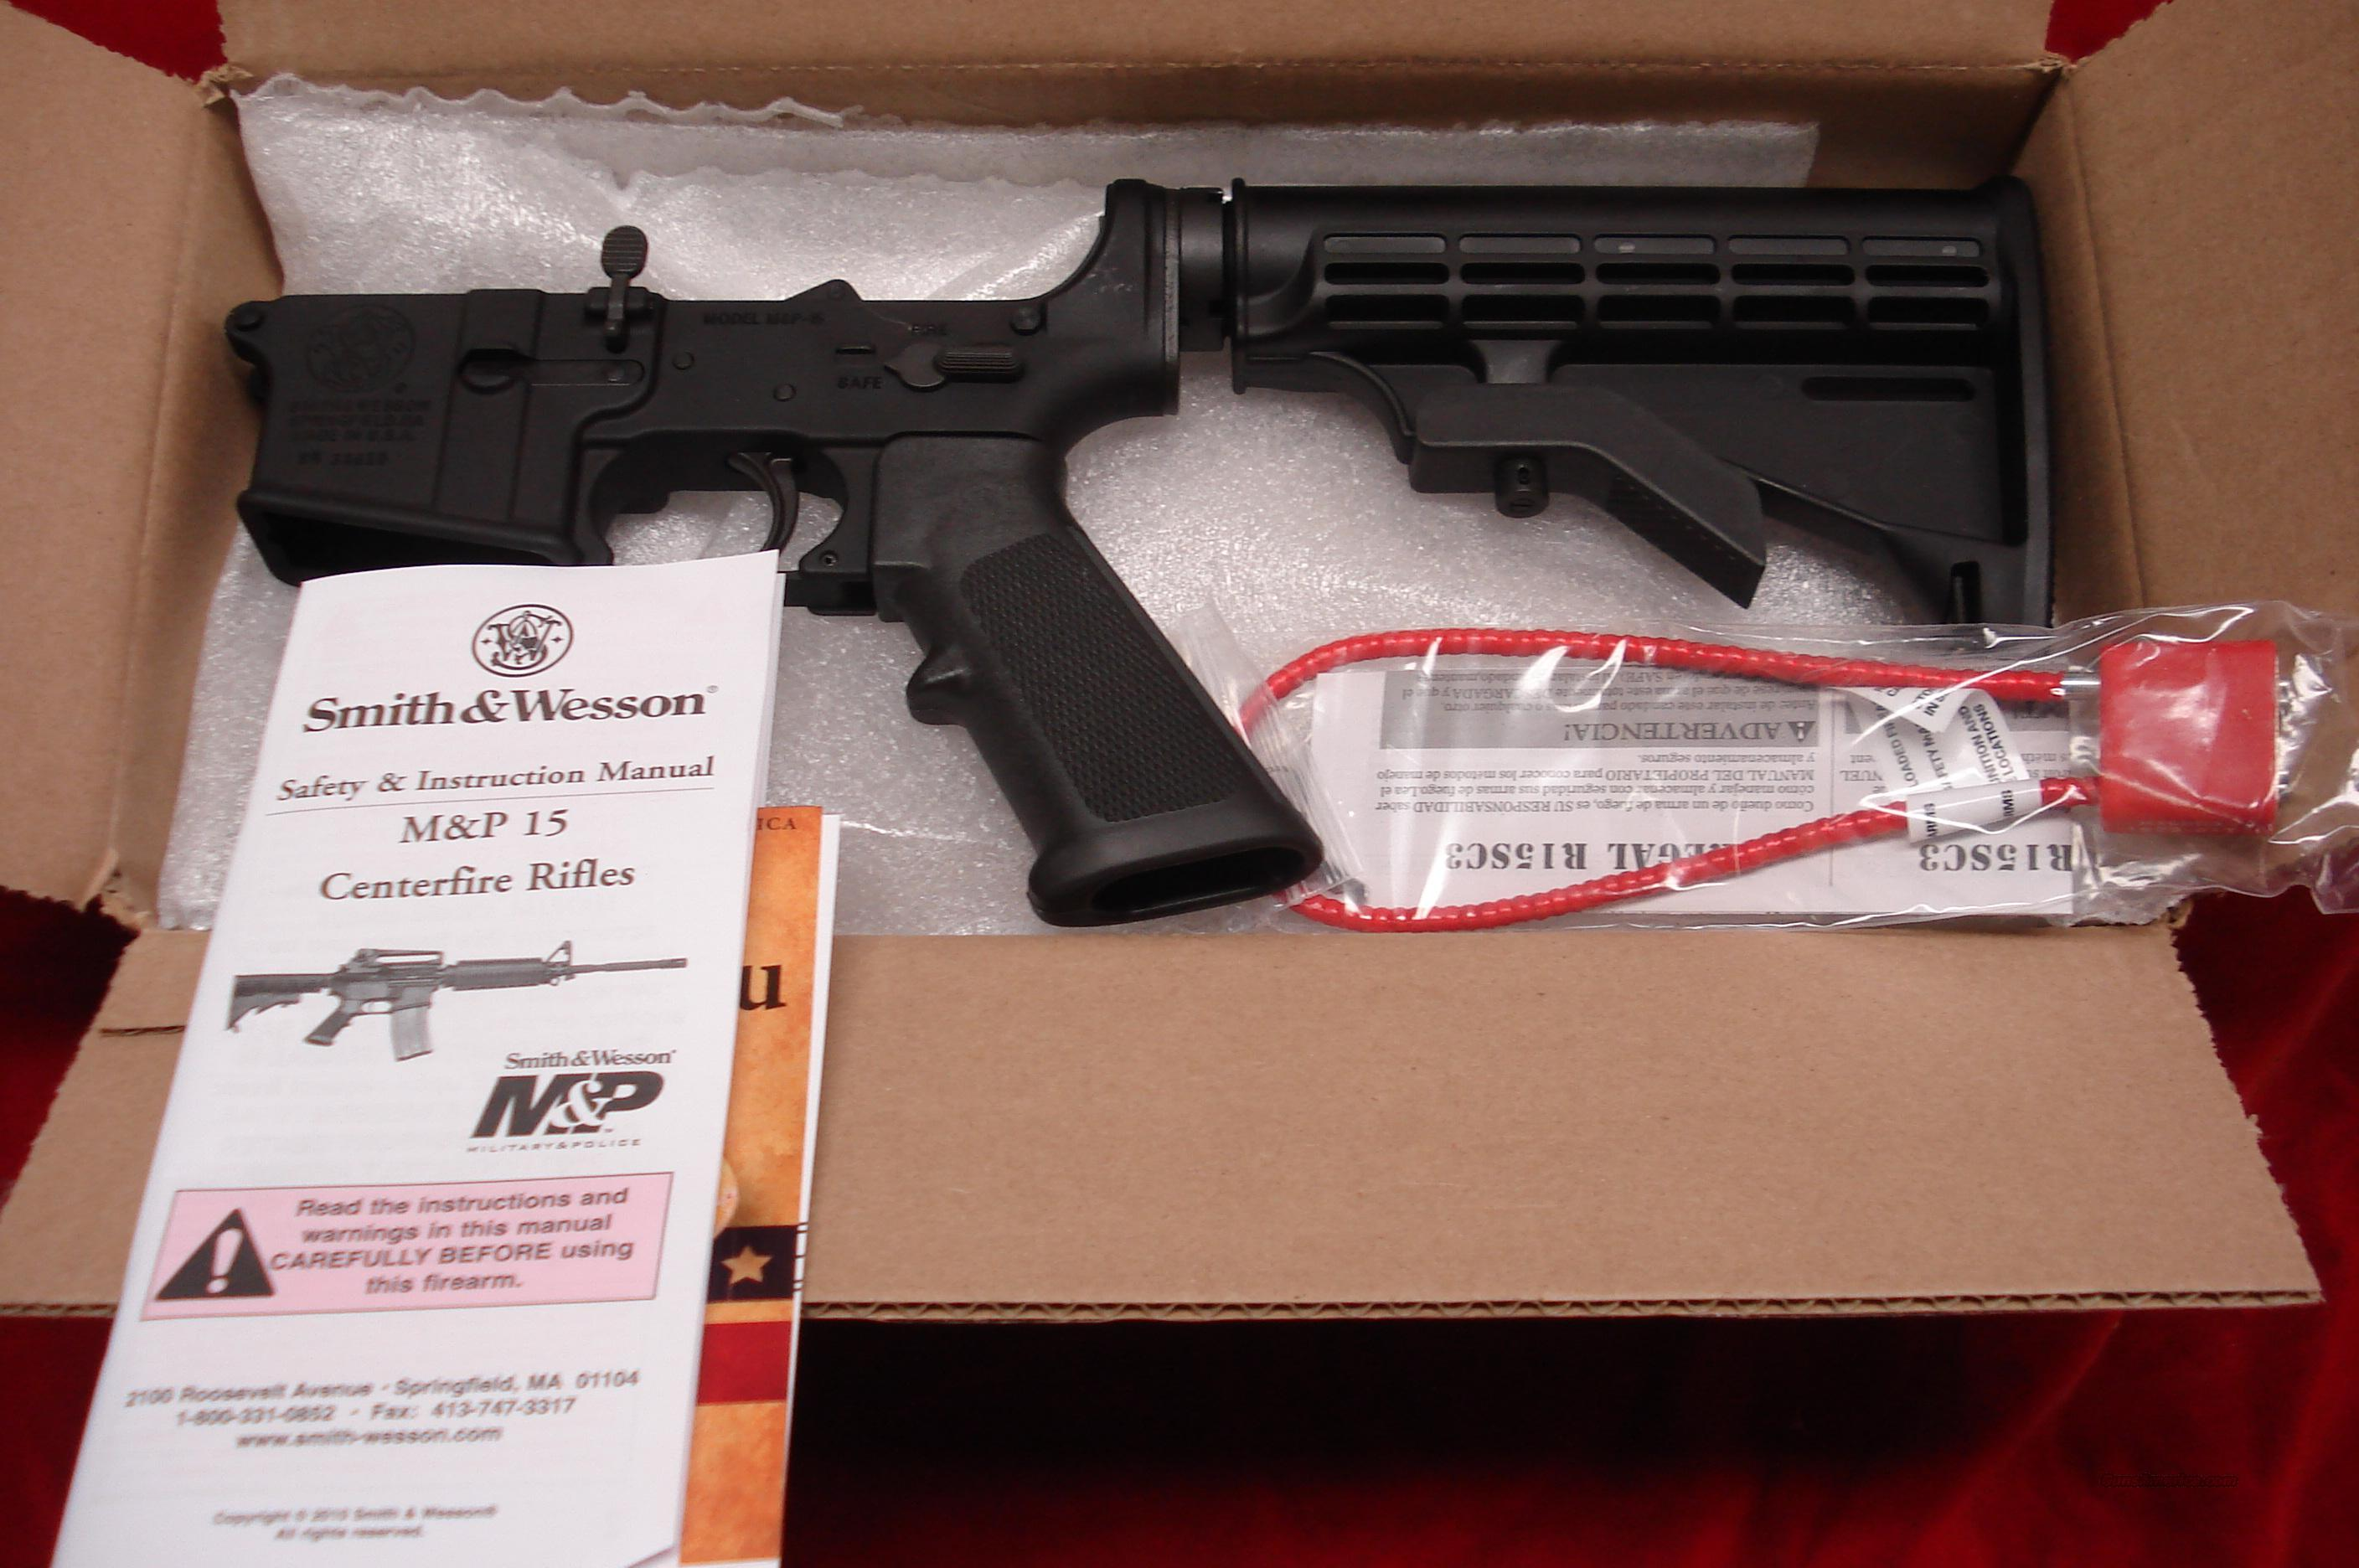 SMITH AND WESSON M&P ASSEMBLED LOWER RECEIVER NEW  Guns > Rifles > Smith & Wesson Rifles > M&P